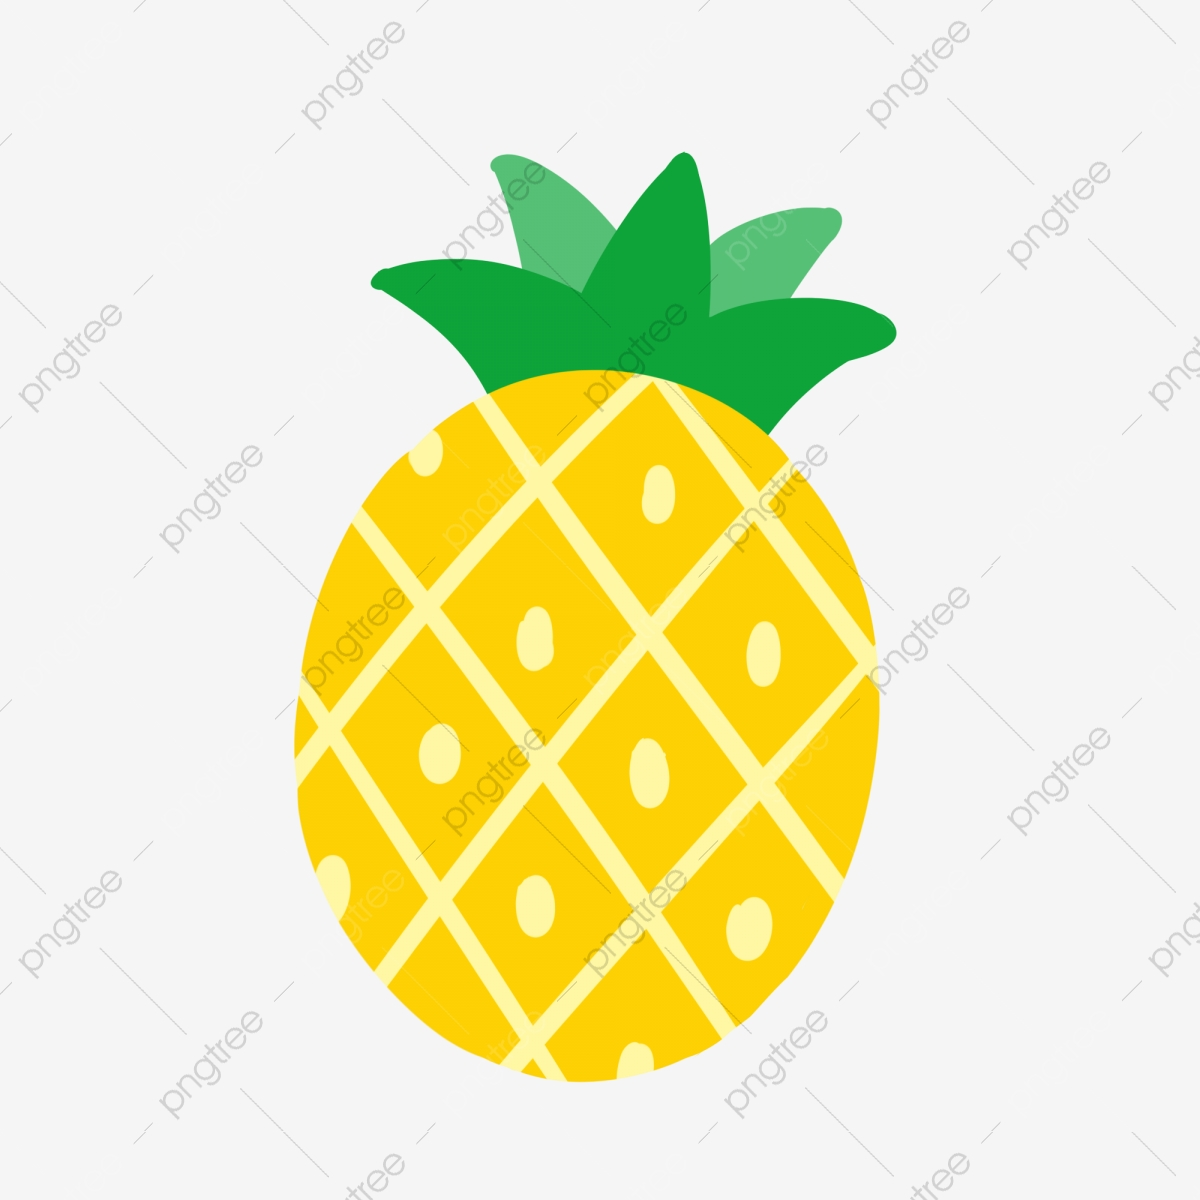 Png transparent image . Pineapple clipart logo